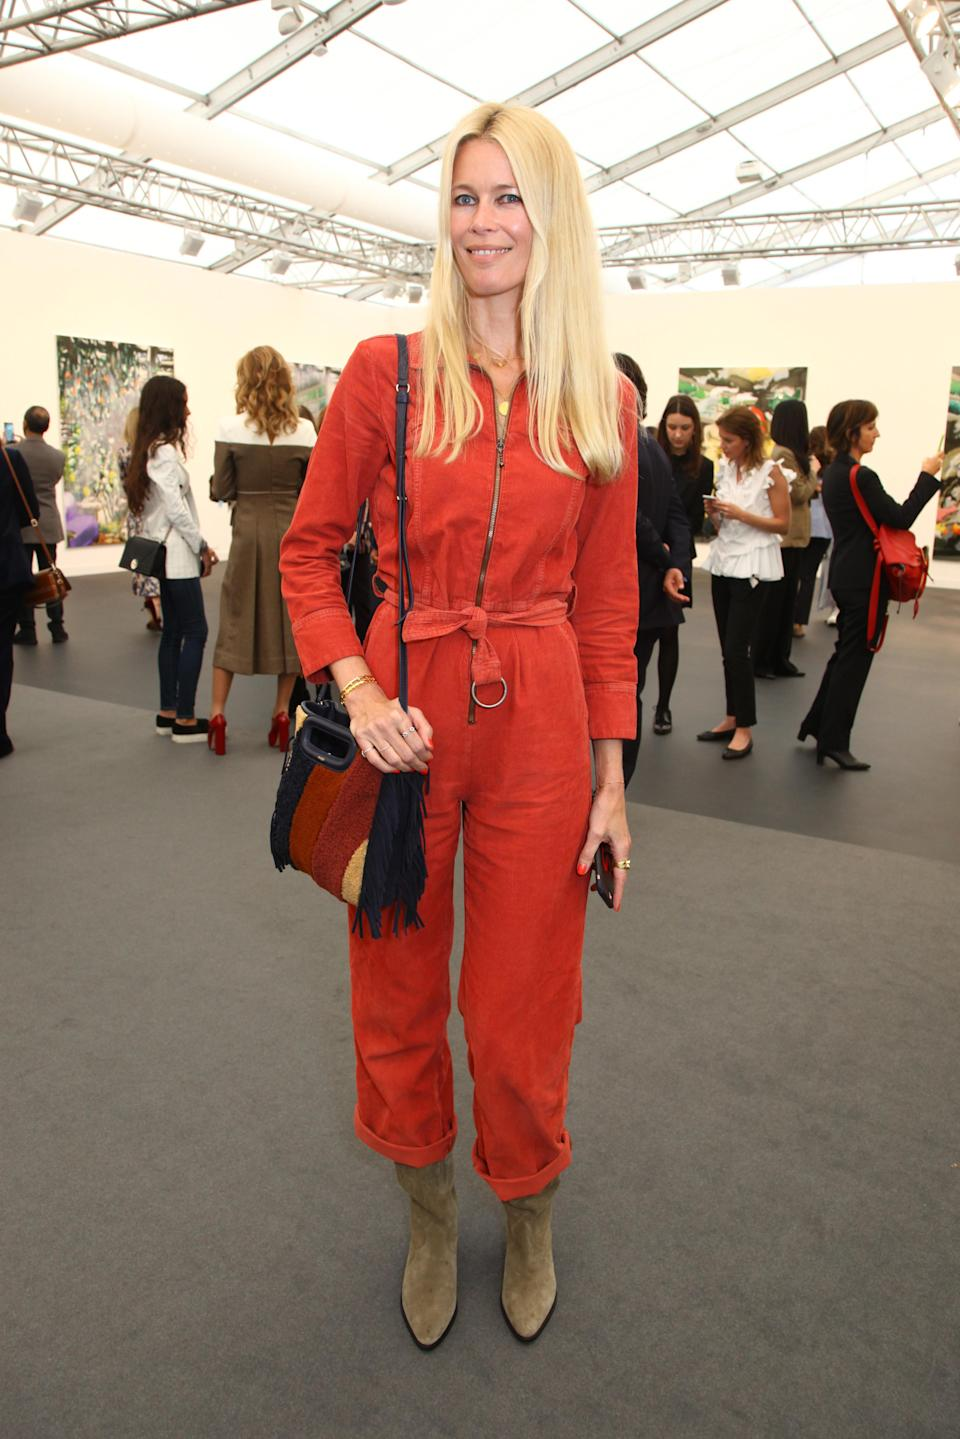 <p>On 3 October, Claudia Schiffer attended a VIP Preview of the Frieze Art Fair in Regents Park in London, England. She wore a utility style orange jumpsuit by MIH Jeans paired with stone coloured Isabel Marant boots and a Maje bag. <i>[Photo: Getty]</i> </p>